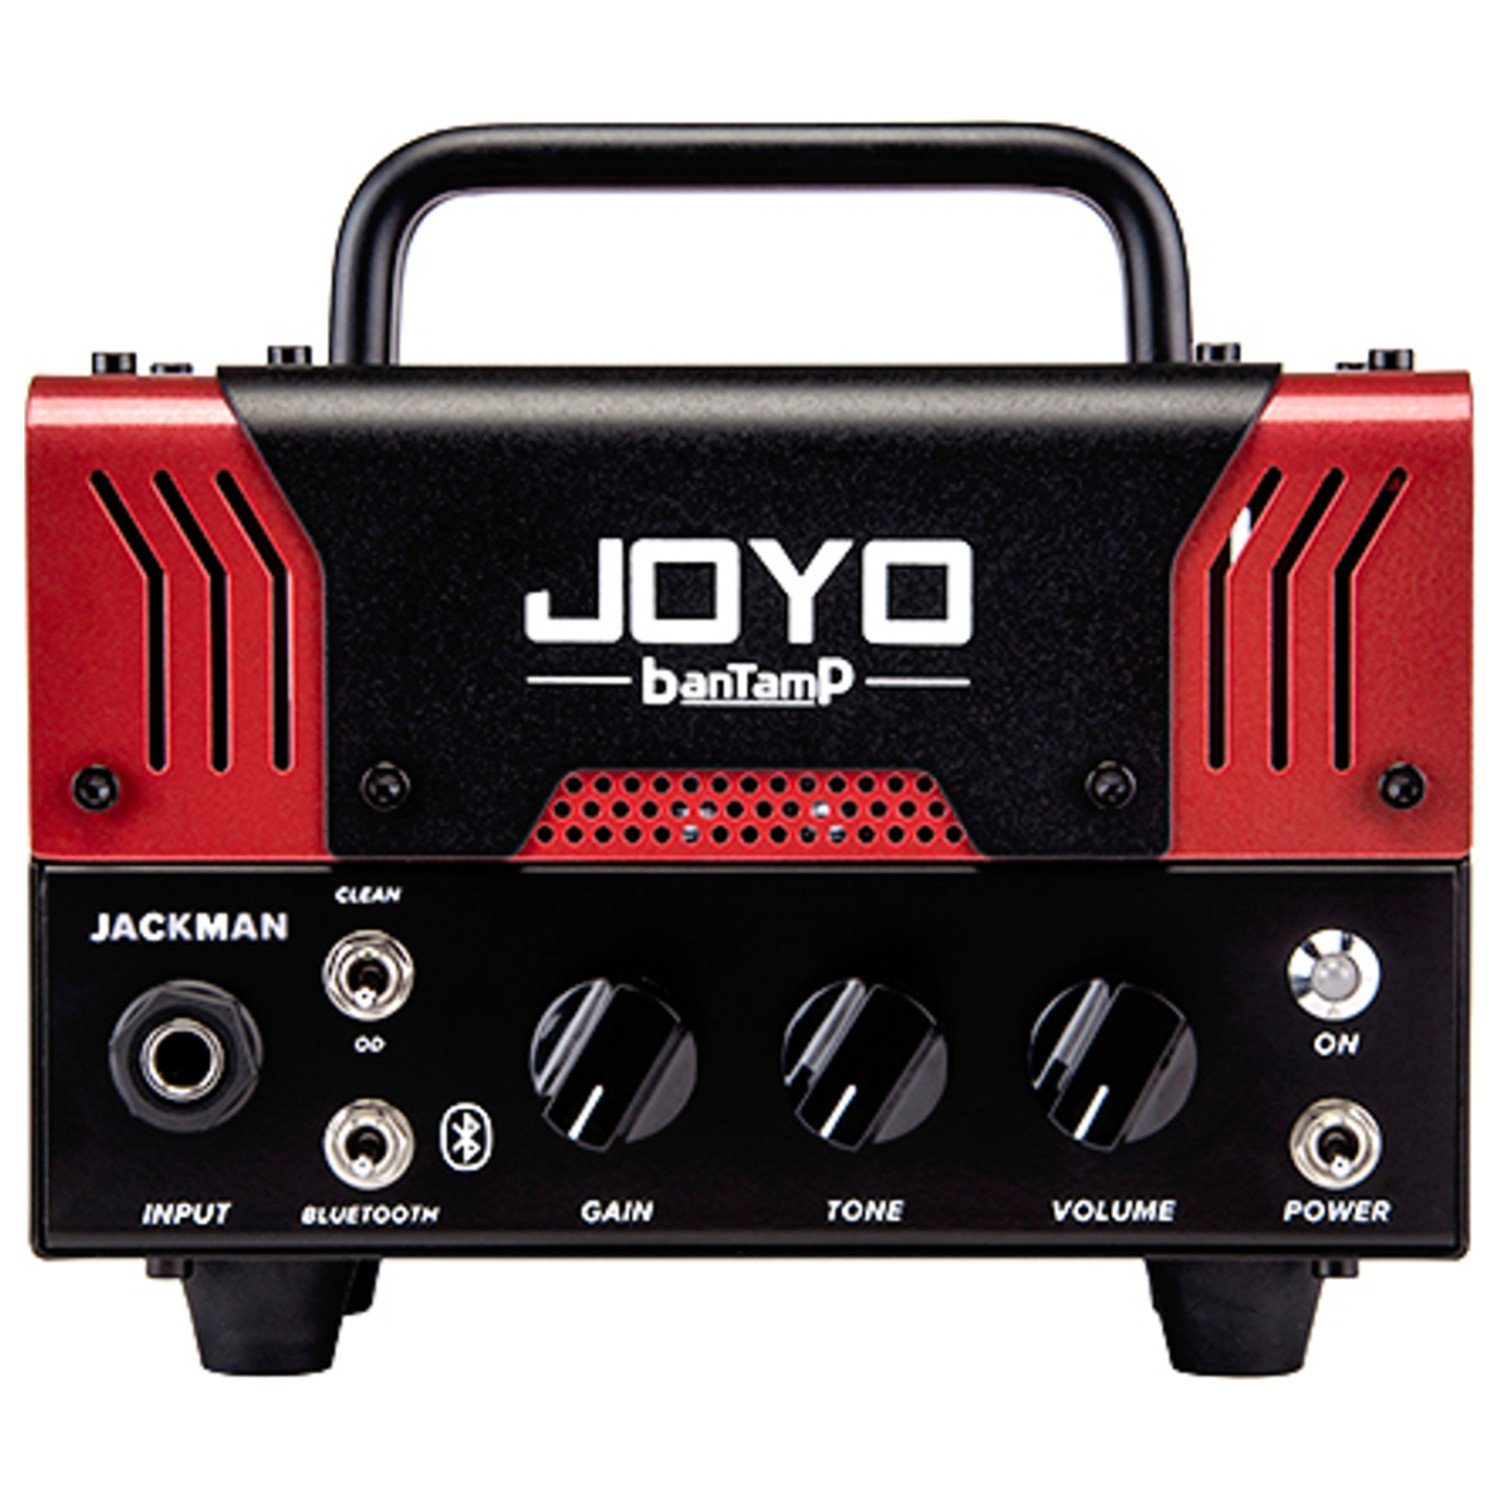 JOYO JACKMAN 20 Watt Mini Tube Head New banTamp Series by Joyo